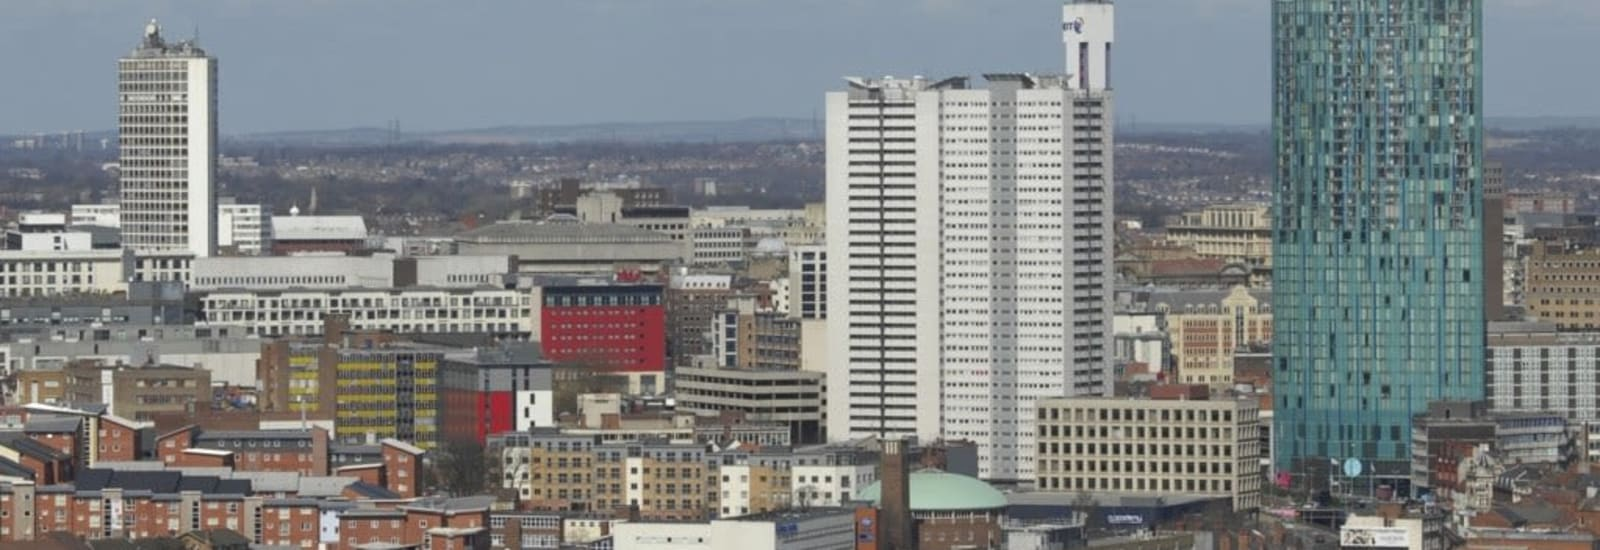 Why tackling inequalities is everyone's business and everyone's battle in Birmingham